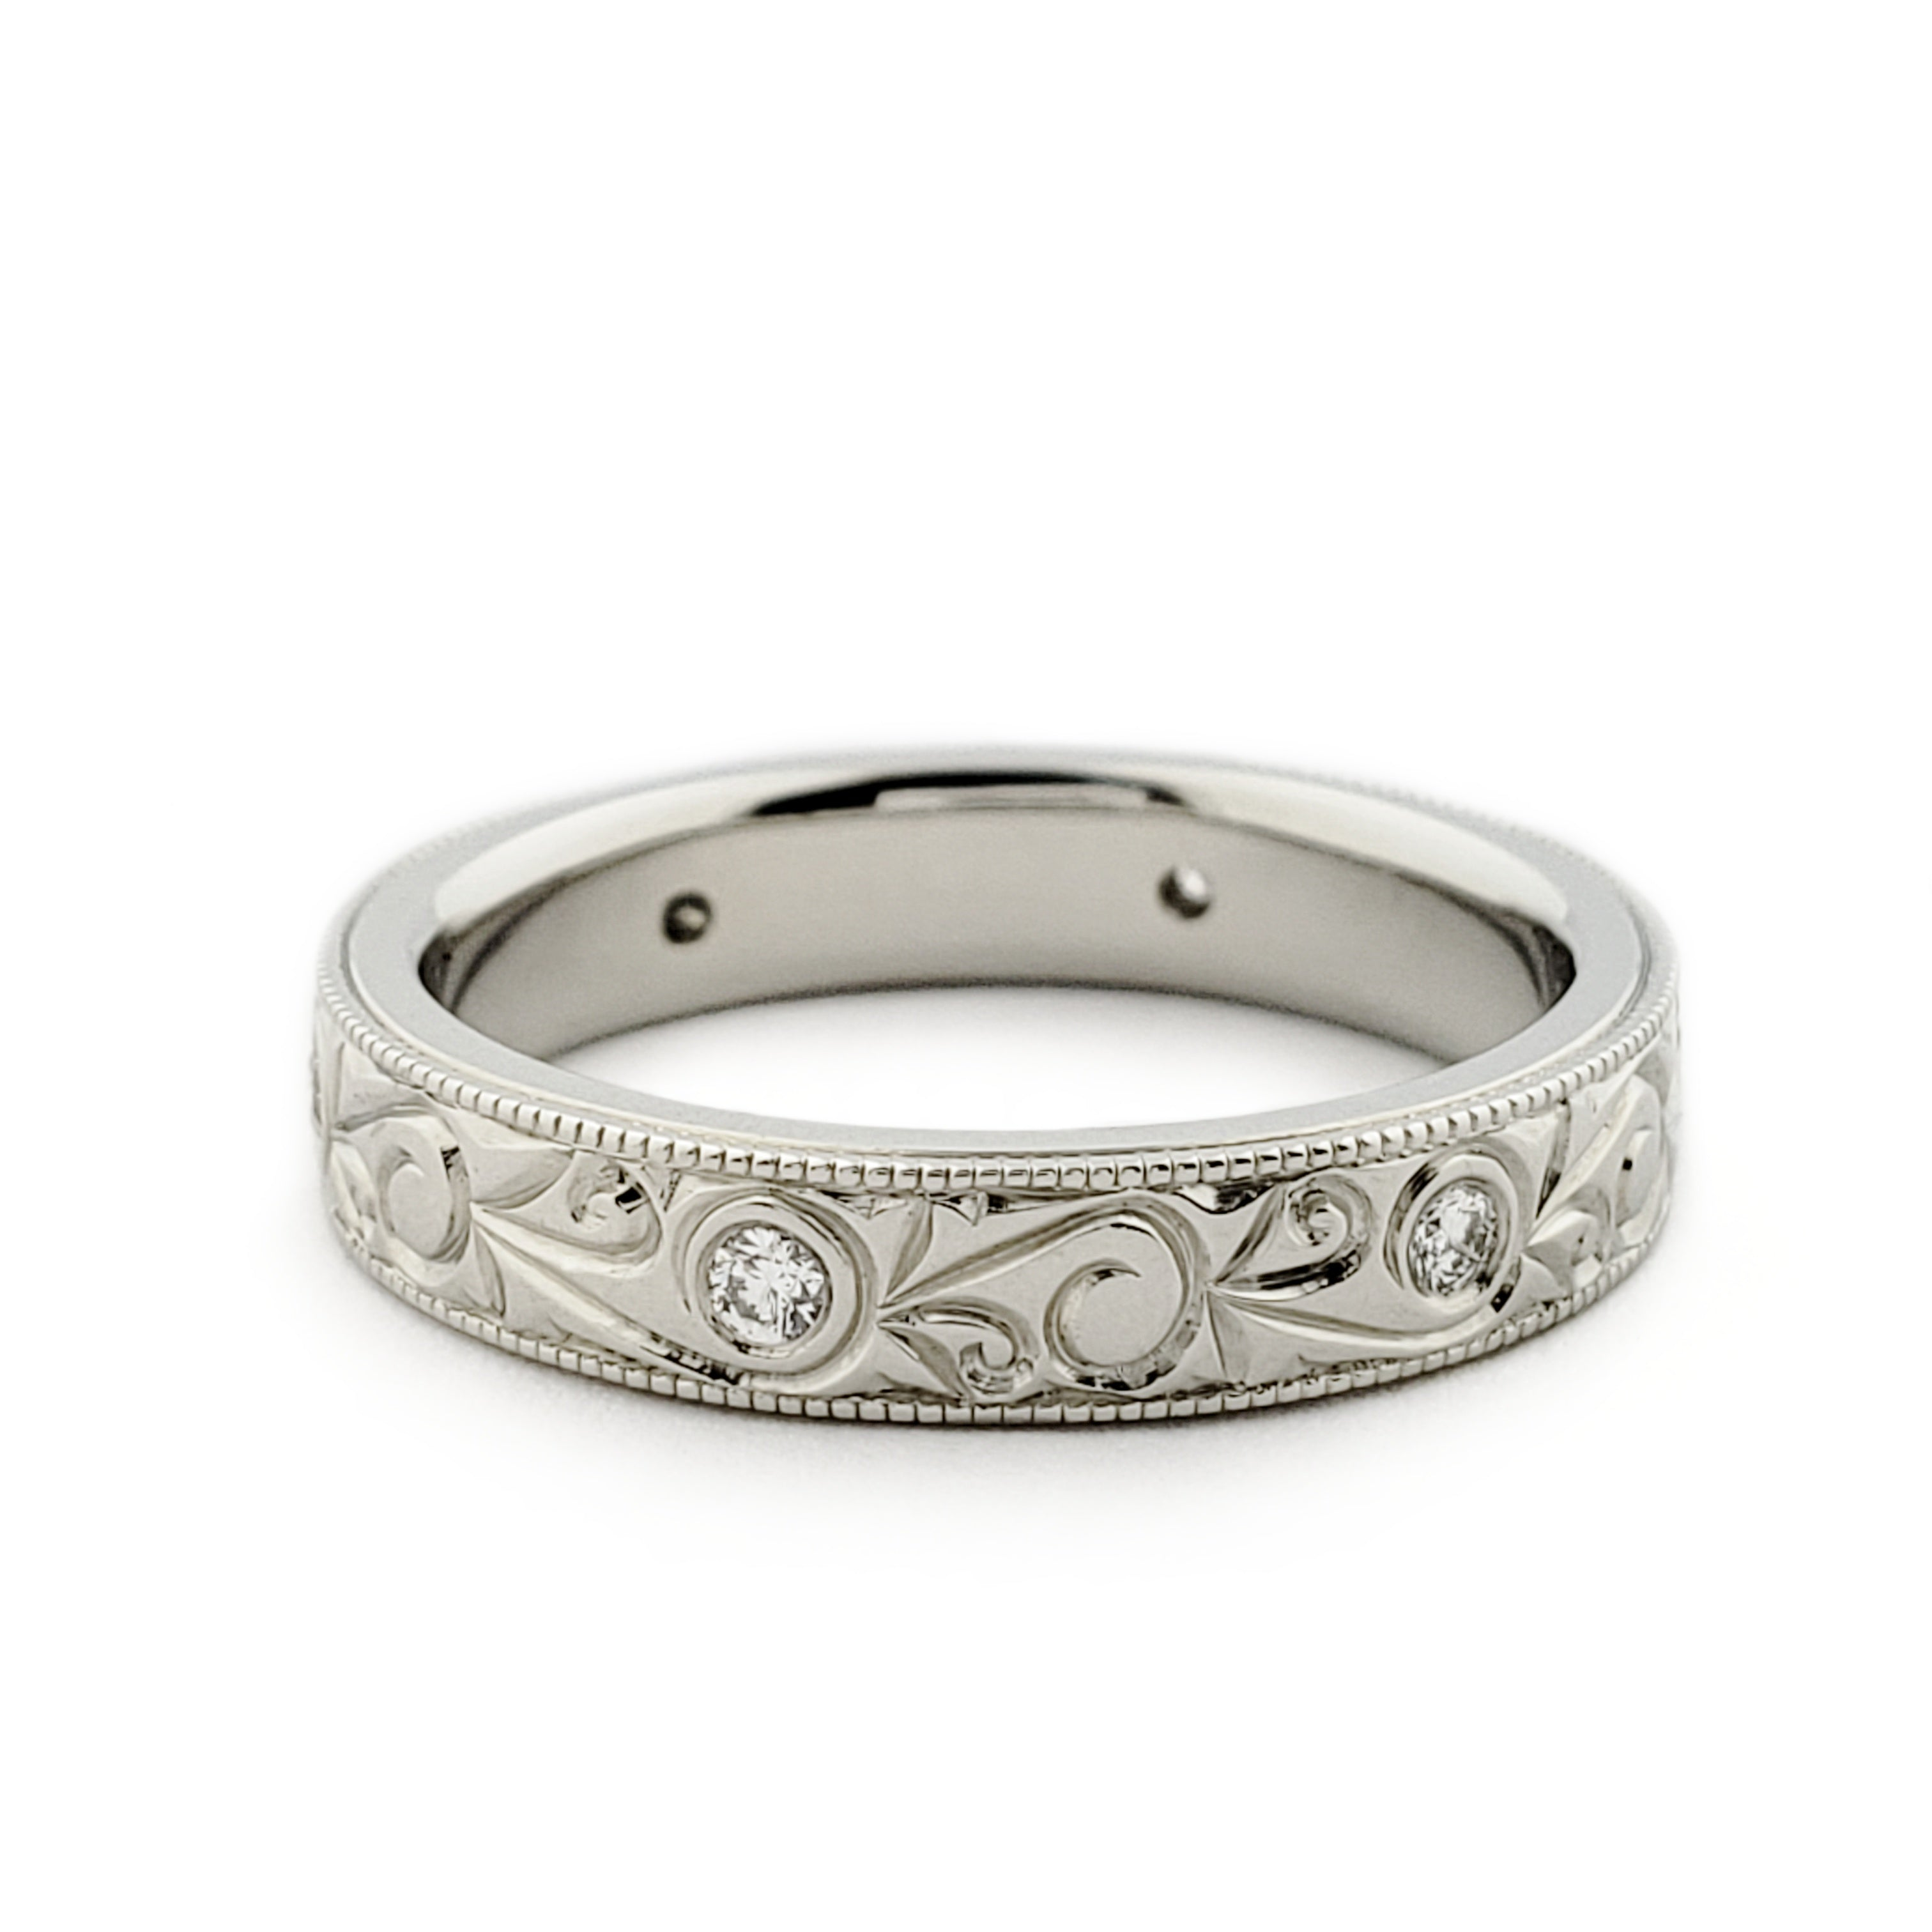 Engraved Diamond Wedding Ring | Era Design Vancouver Canada